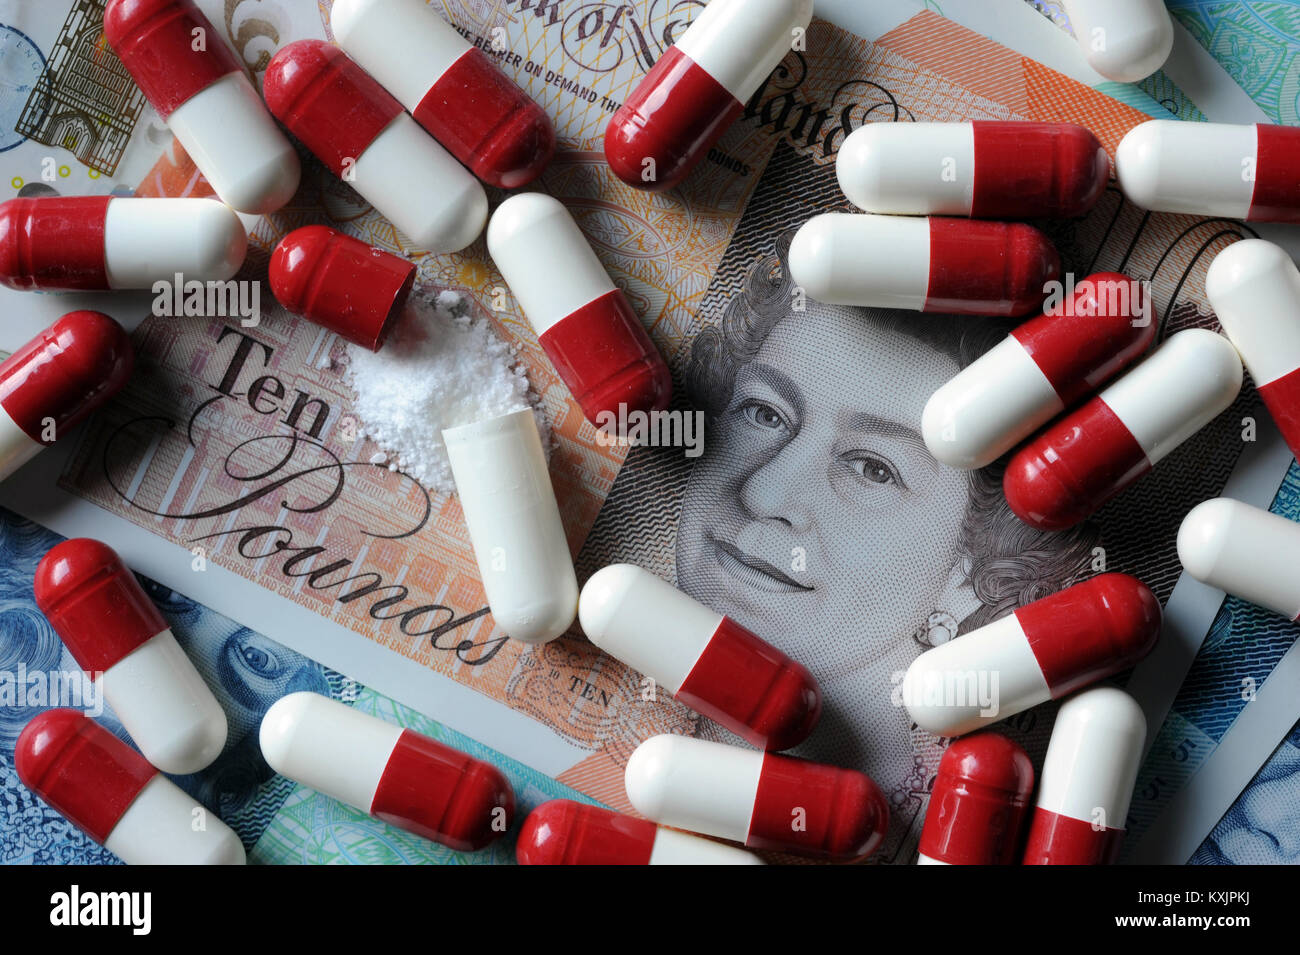 NEW BRITISH CURRENCY WITH MEDICATION CAPSULES RE COST OF HEALTHCARE PRESCRIPTIONS MEDICINE NHS GP DRUGS ETC UK - Stock Image